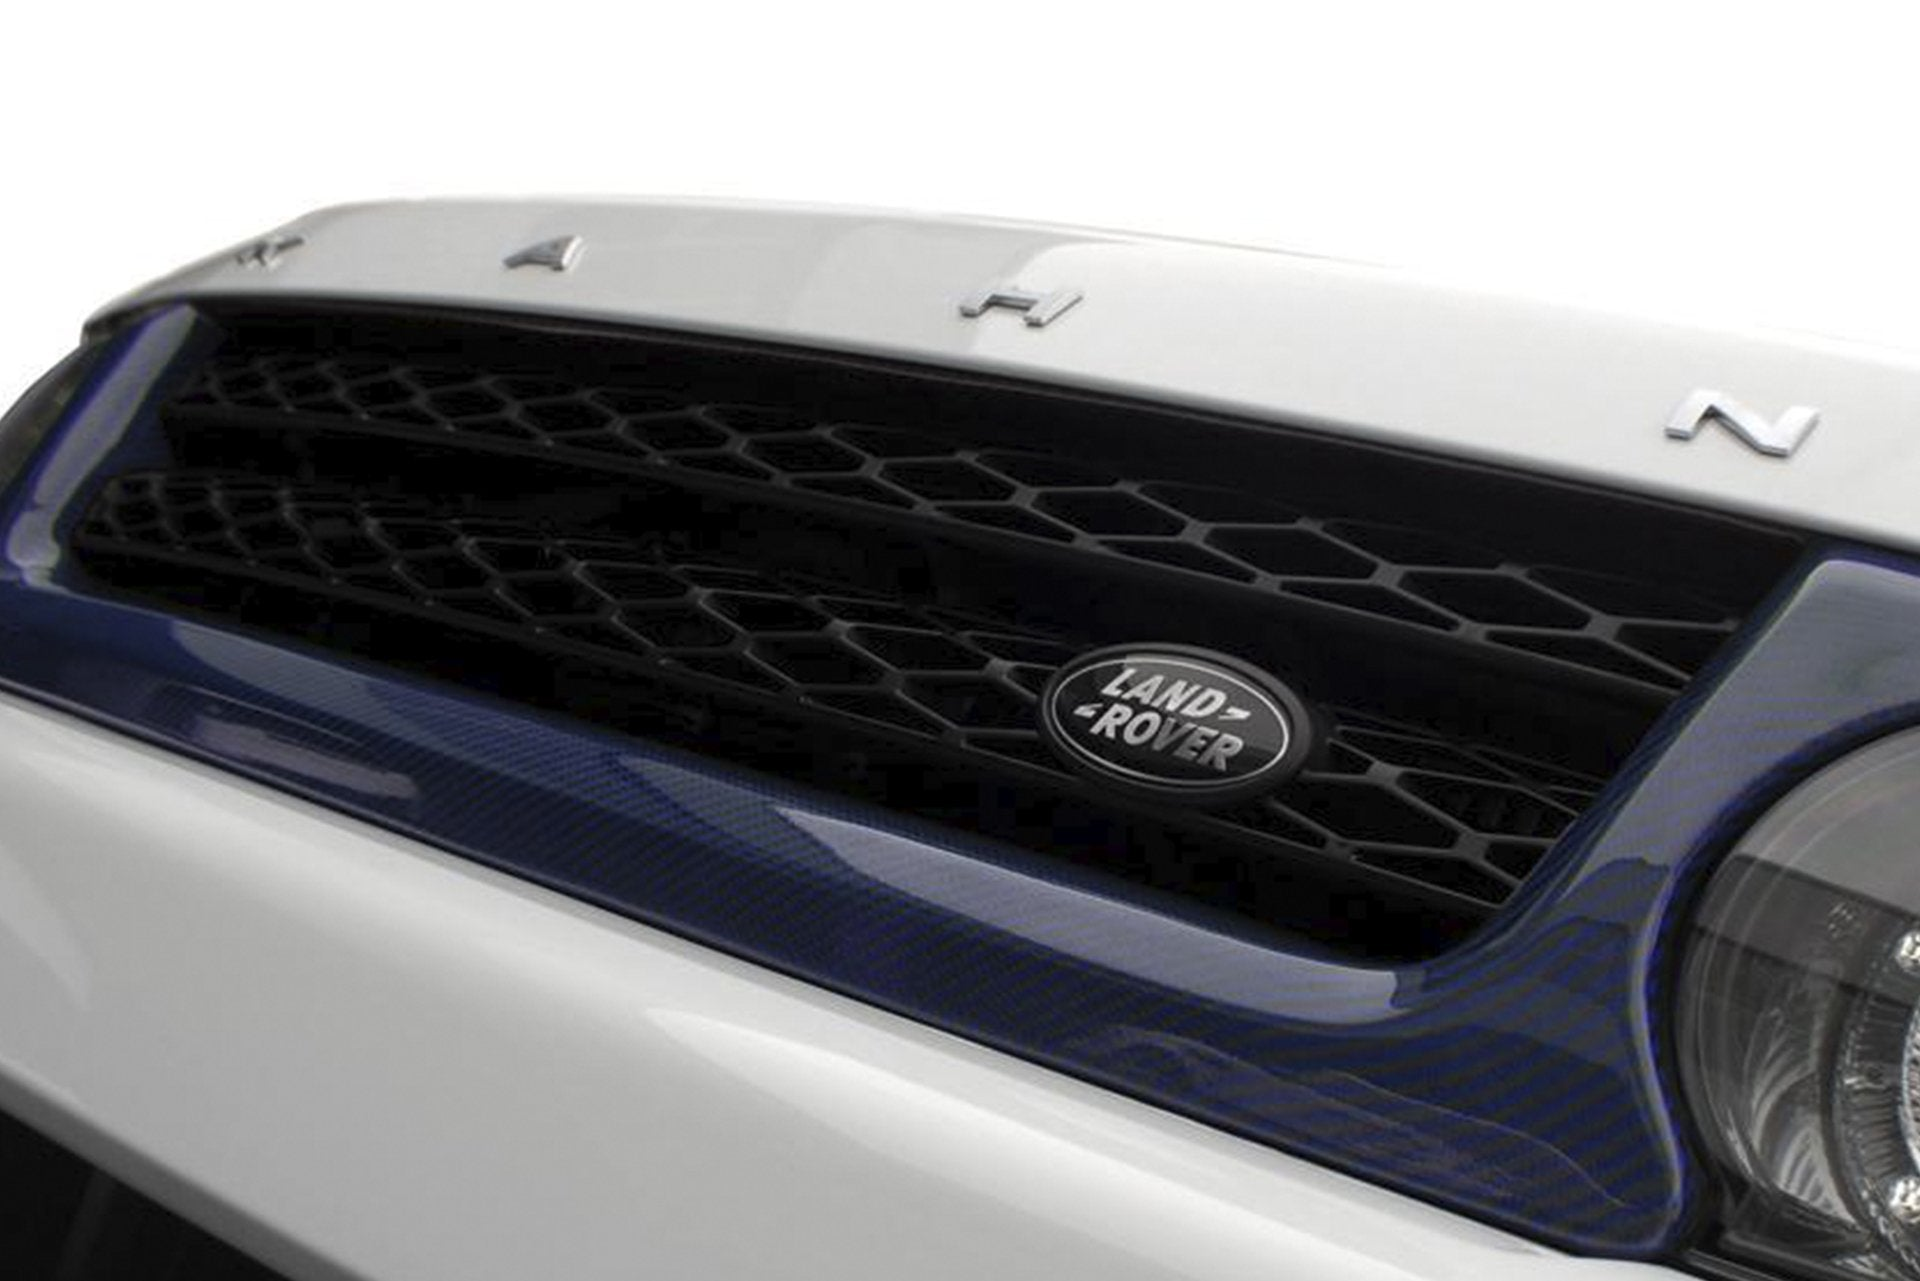 Range Rover Sport (2005-2013) Exposed Carbon Fibre Front Grille Surround by Kahn - Image 1897